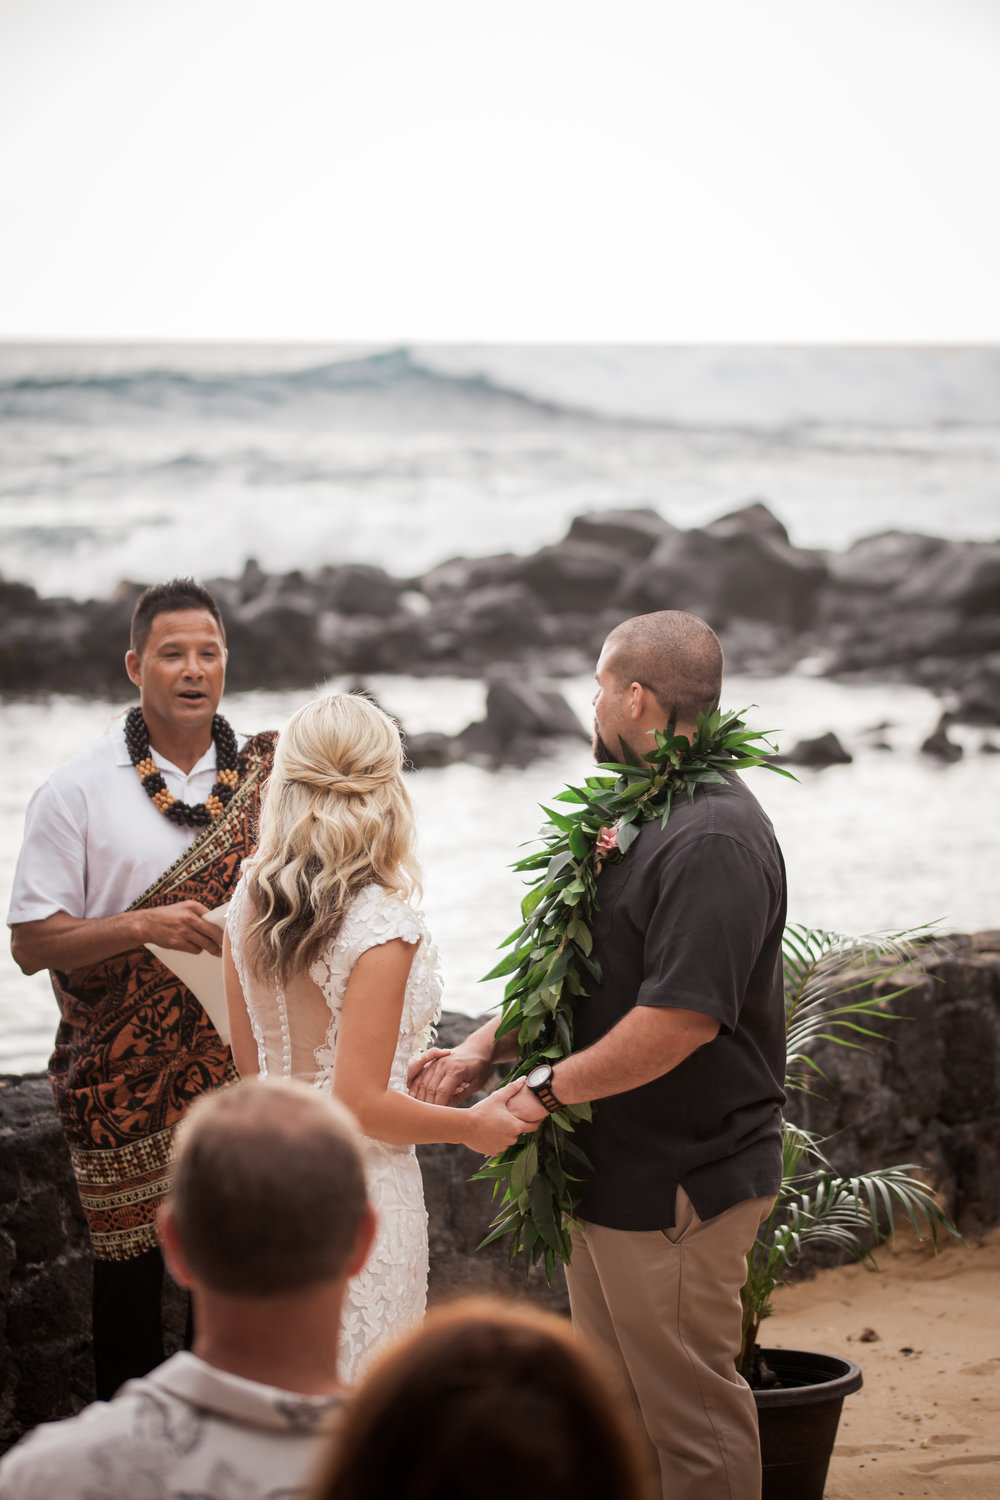 big island hawaii royal kona resort beach wedding © kelilina photography 20170520165712.jpg